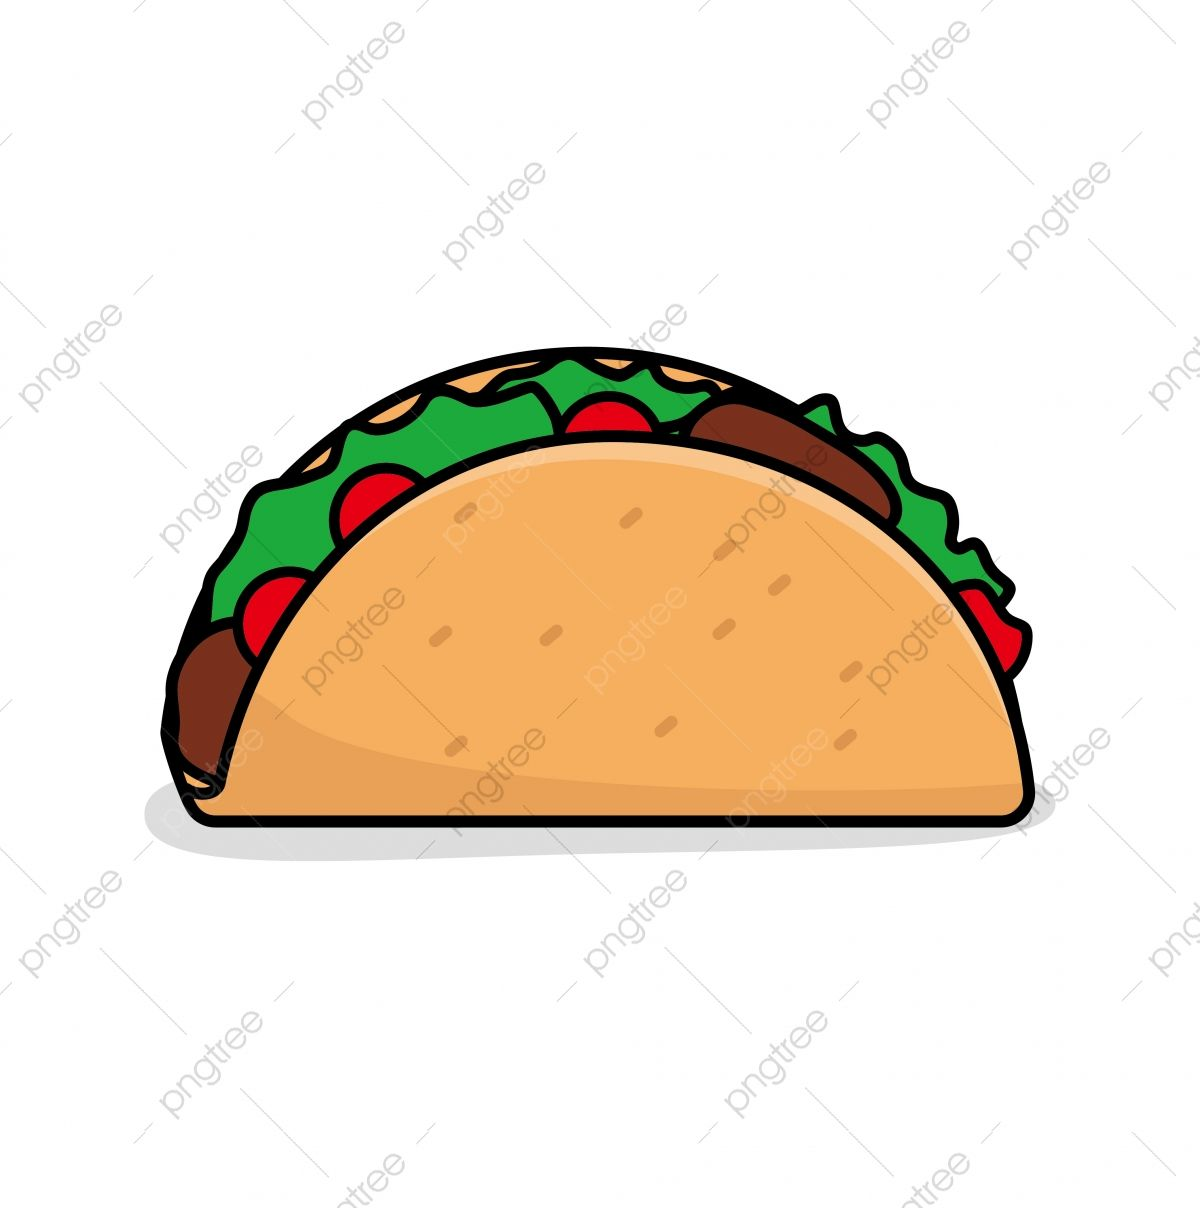 Taco Vector Illustration Isolated On White Background Taco Clip Art Food Clipart Mexican Food Food Png And Vector With Transparent Background For Free Downlo Clip Art Vector Illustration Pineapple Vector